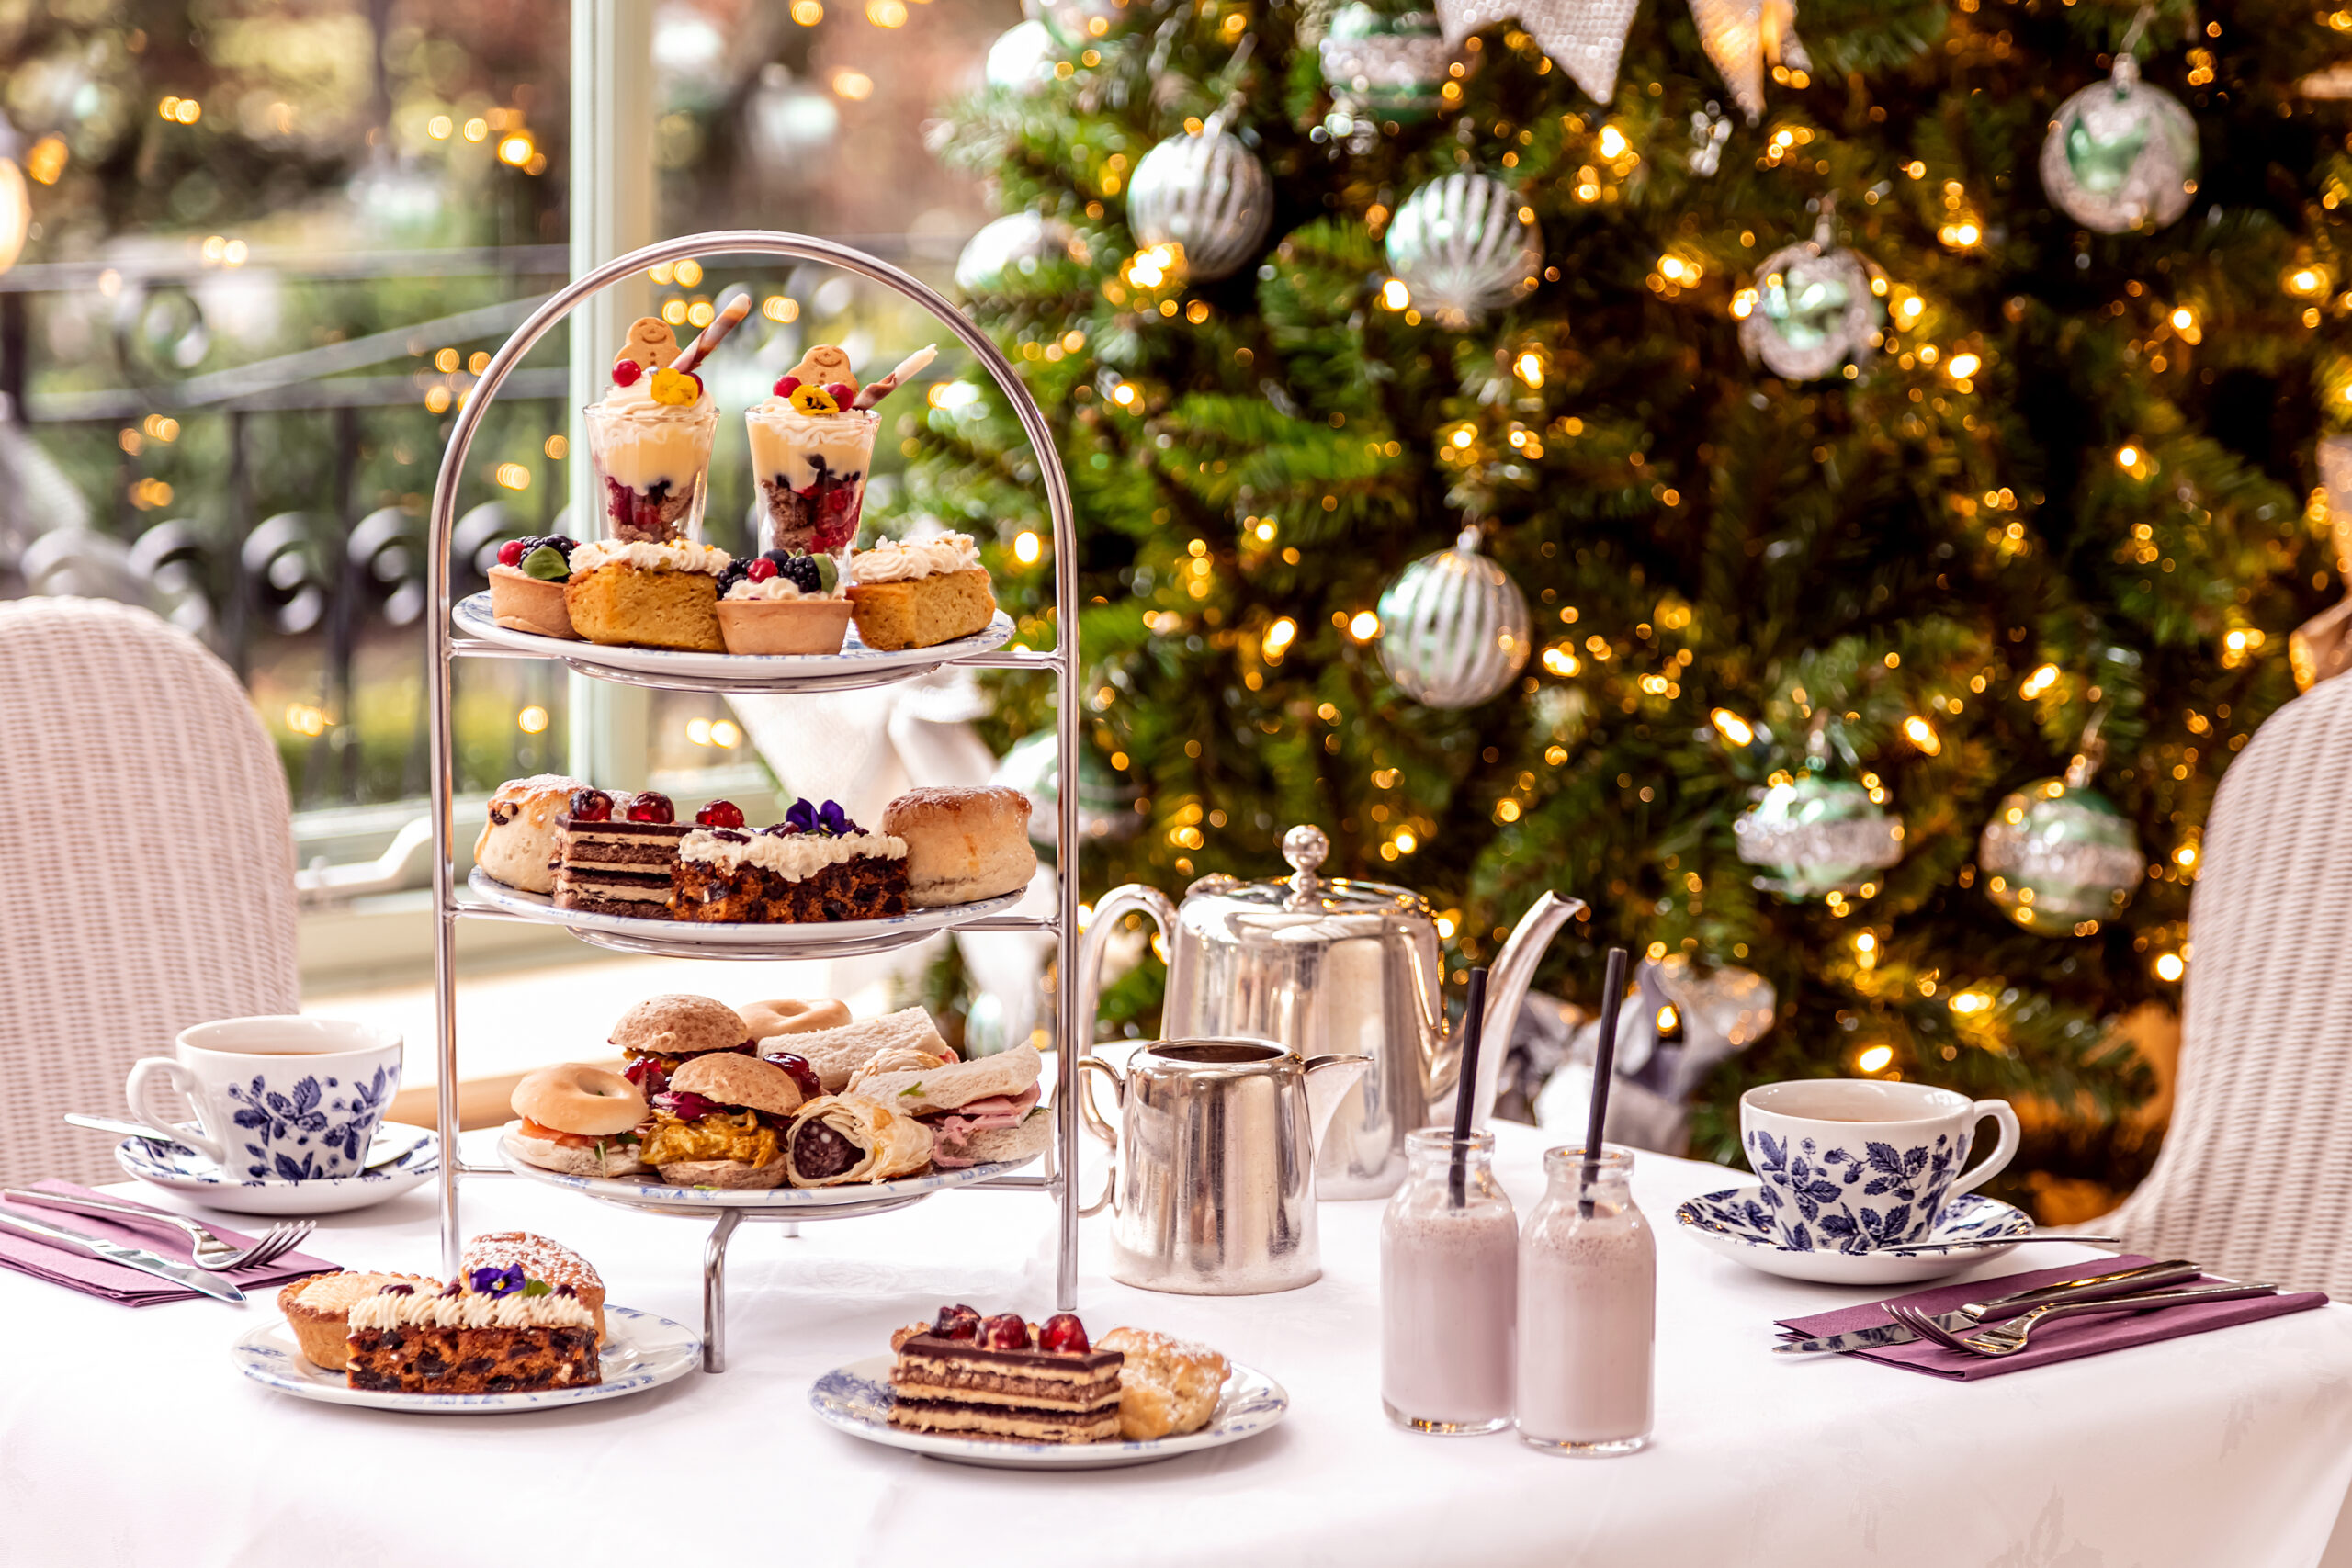 Yuletide Afternoon Tea at the Borrowdale Hotel